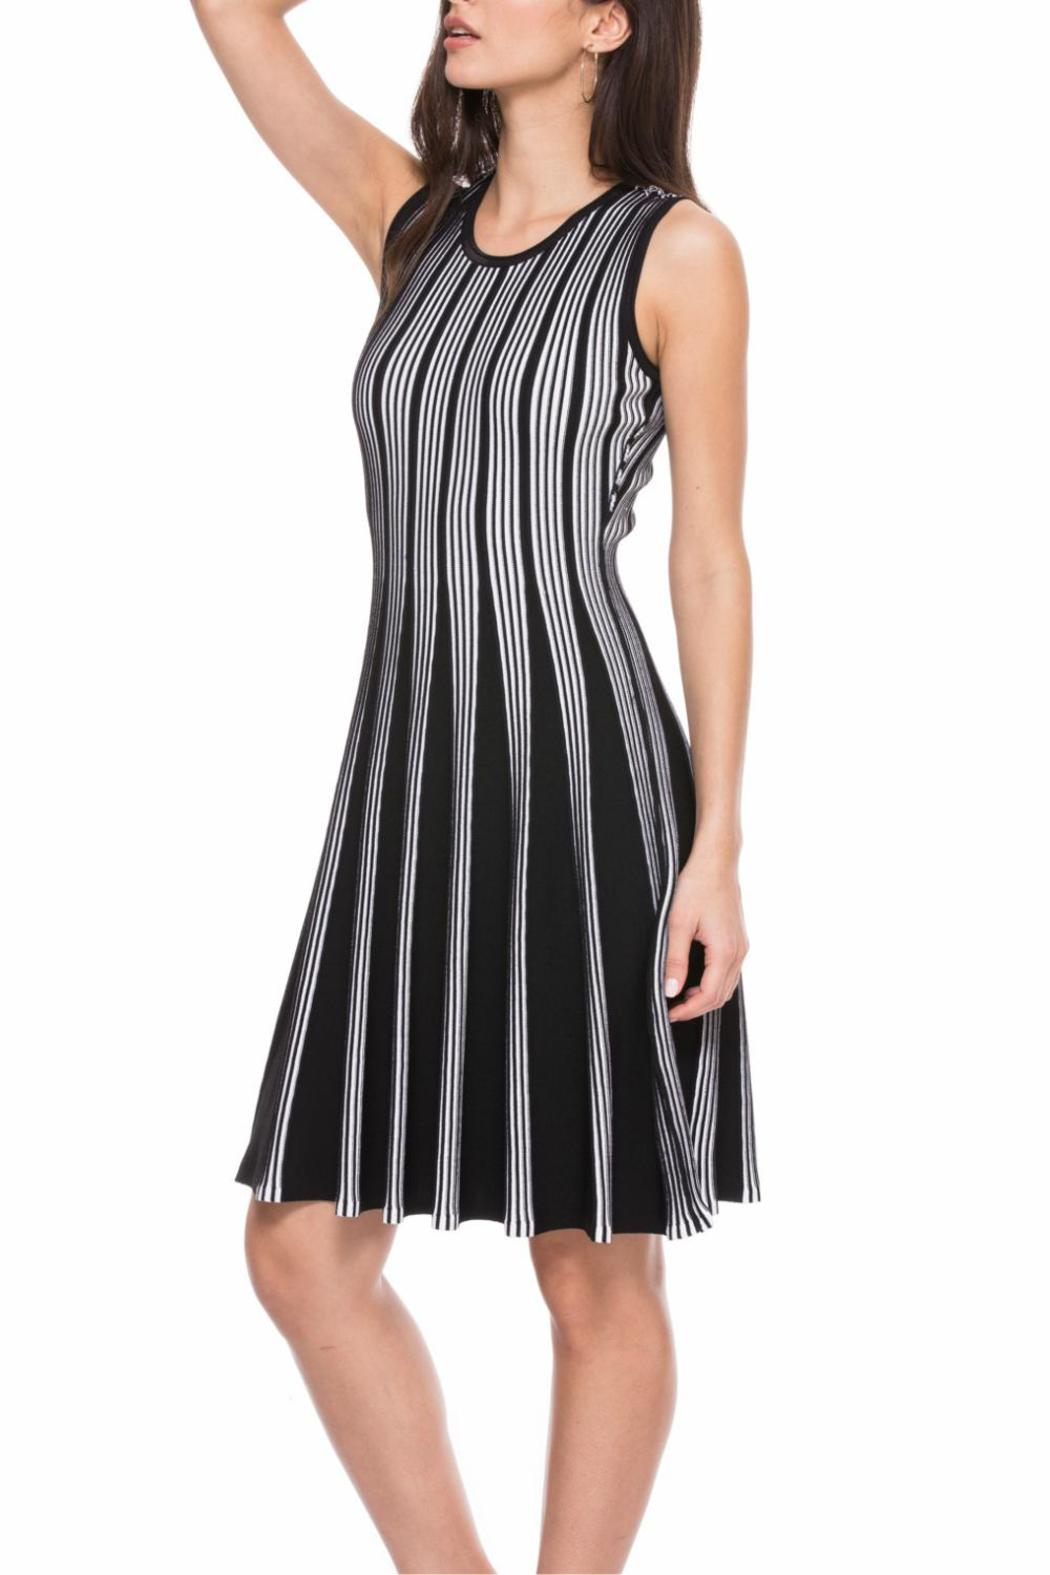 Adore Flare Reversible Dress From New Jersey By Locust